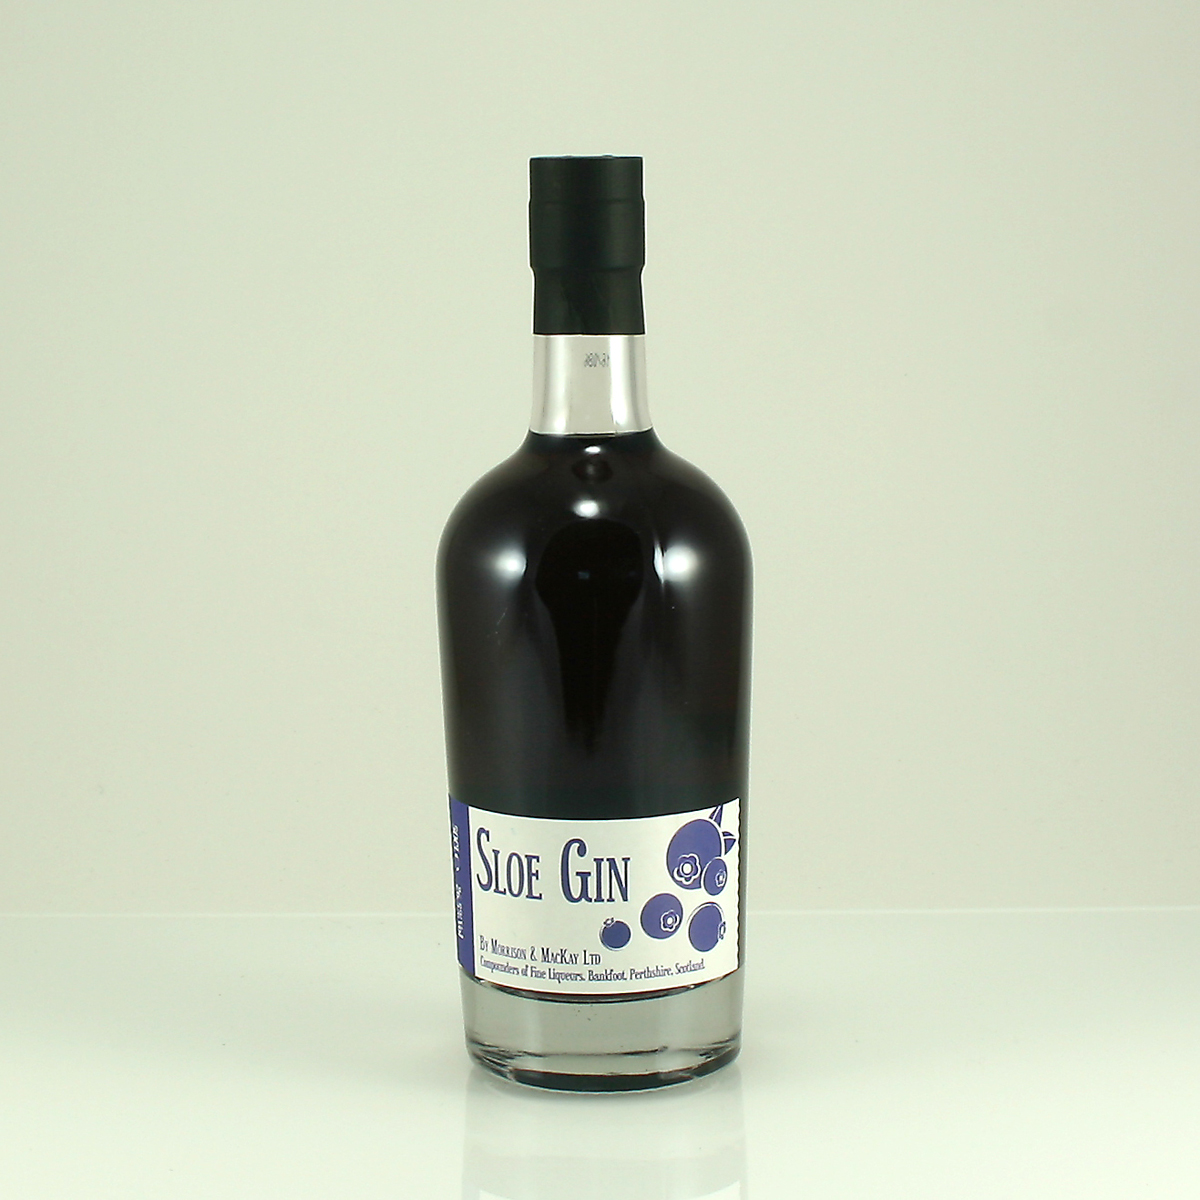 PERTHSHIRE Sloe Gin 50cl 26.5%